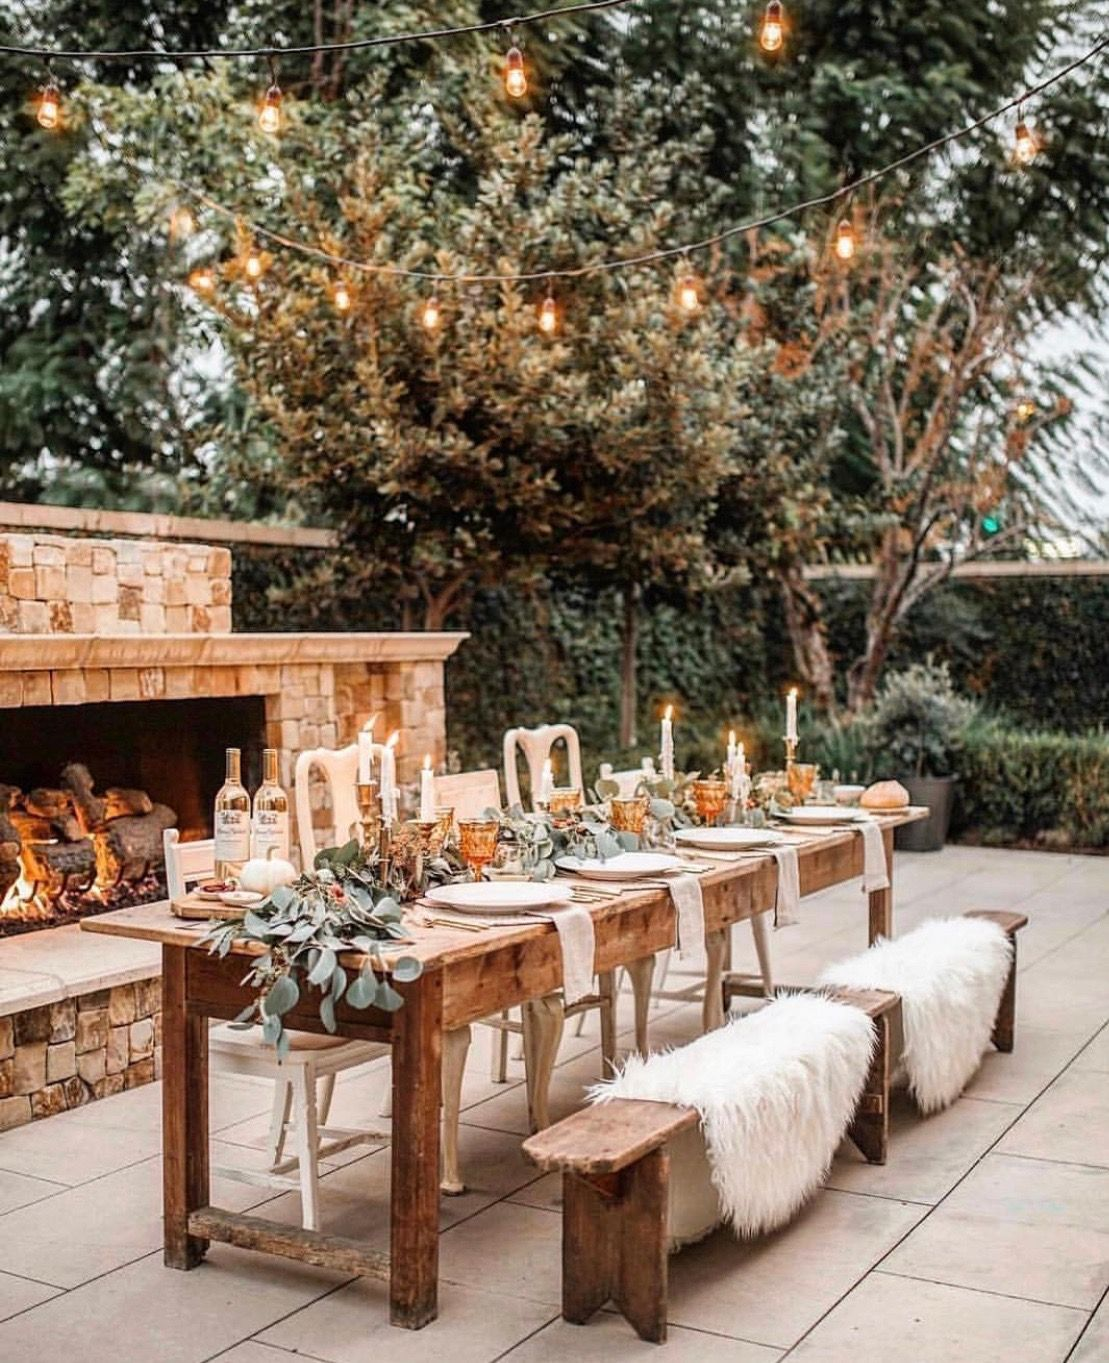 Pin By Blanc On Julie S Moroccan Garden Backyard Dining Outdoor Dinner Thanksgiving Tablescapes